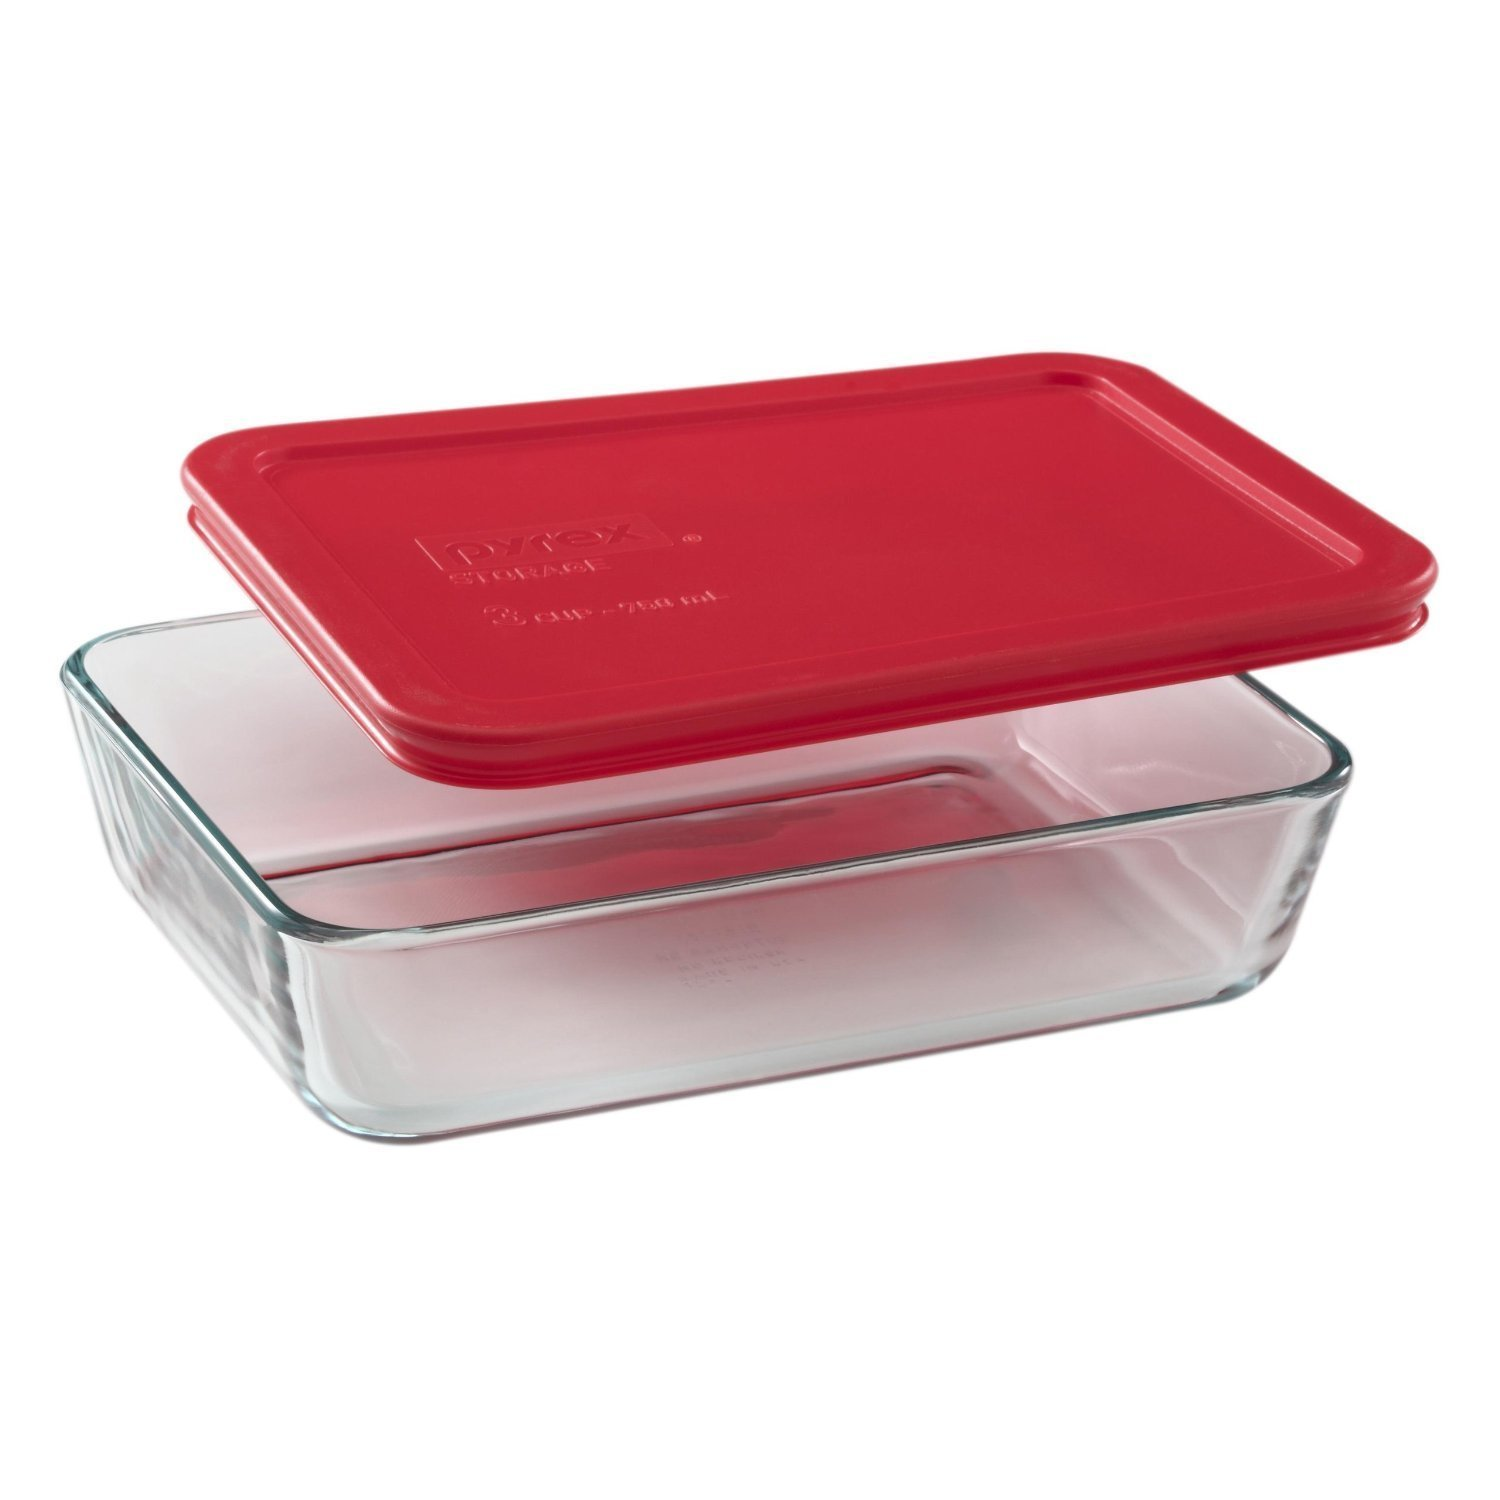 Pyrex 3-cup Rectangle Glass Food Storage Set Container (Pack of 6 Containers)